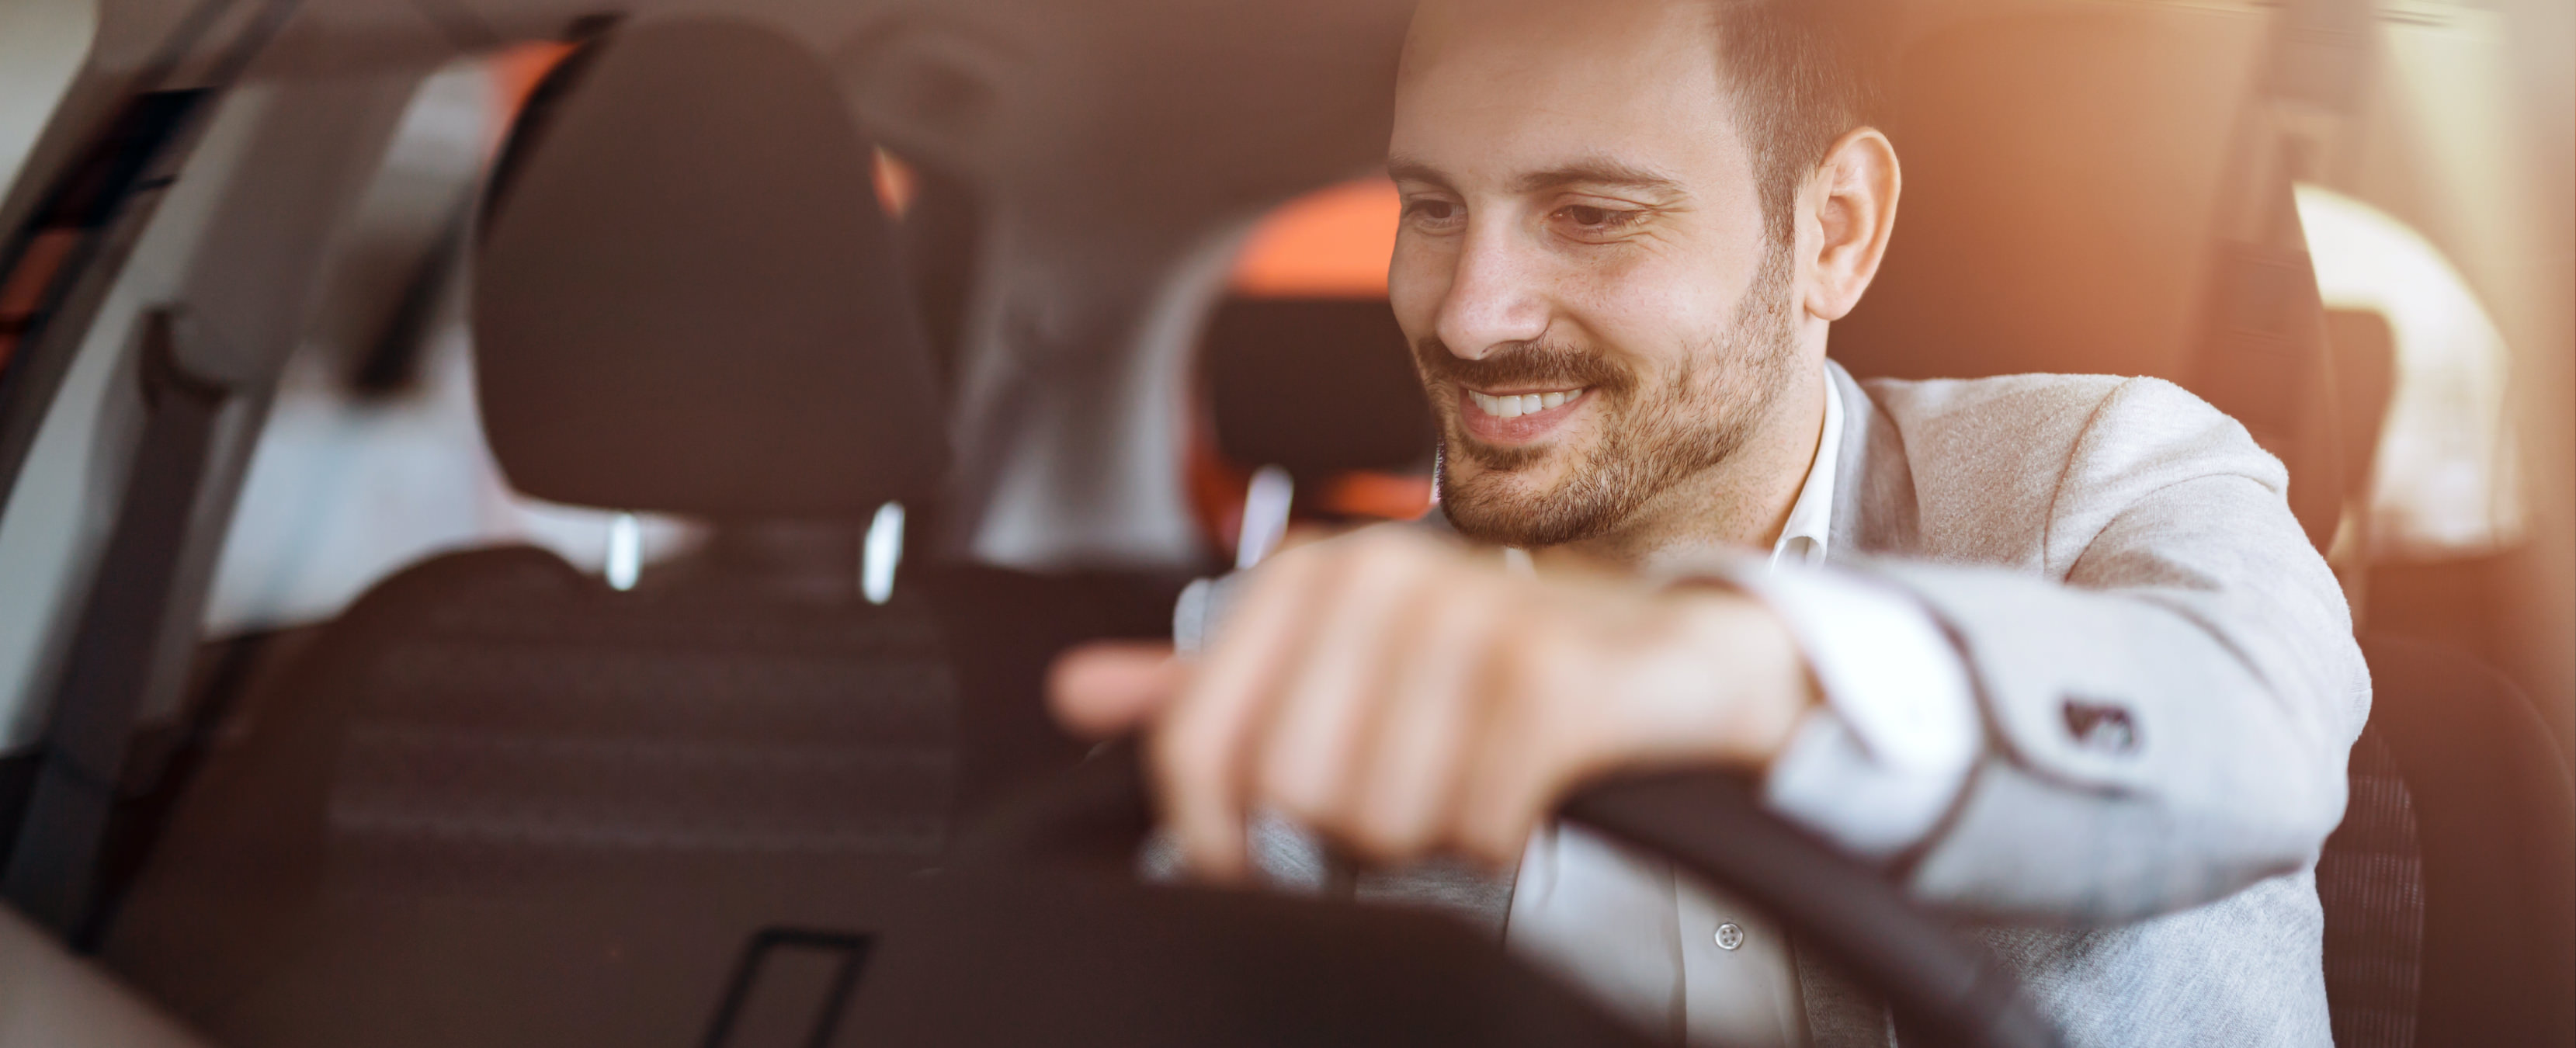 Man in a car smiling engaging with something on the dashboard